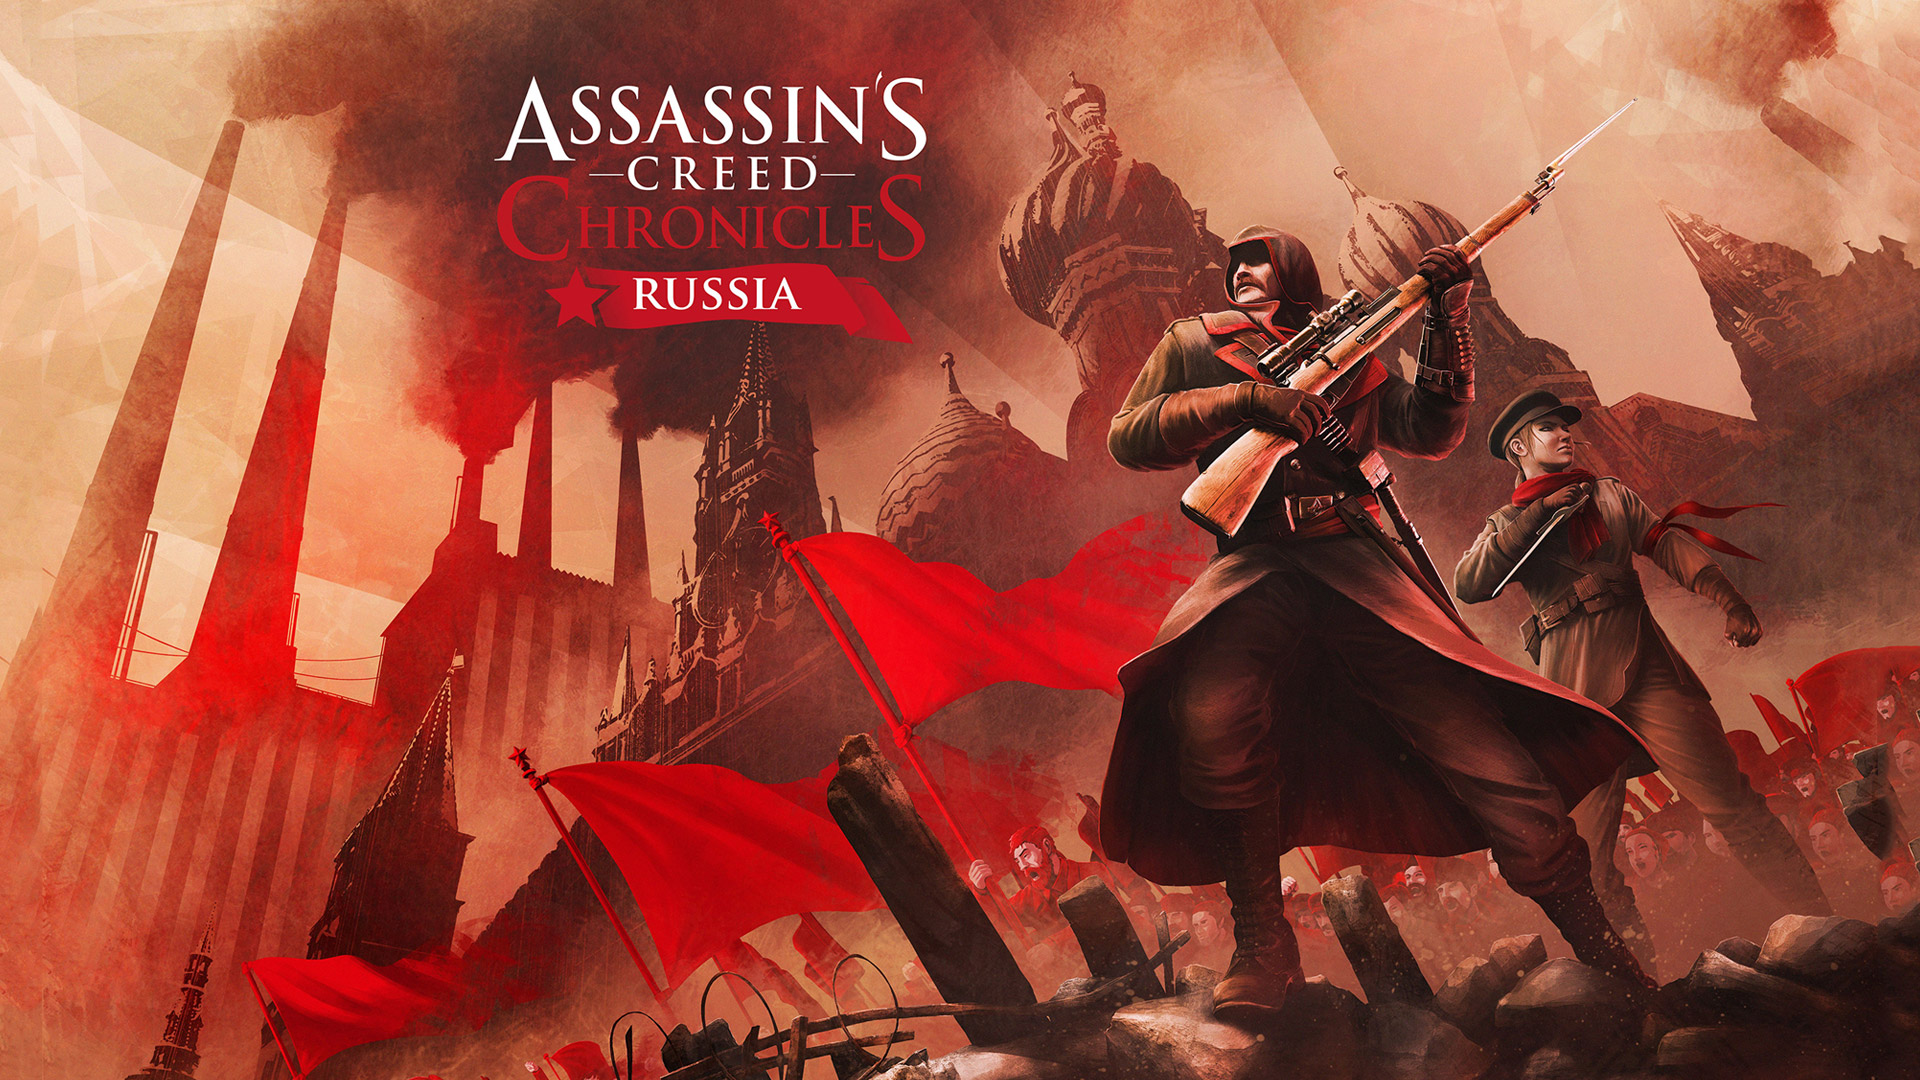 Assassin's Creed Chronicles: Russia Wallpaper in 1920x1080